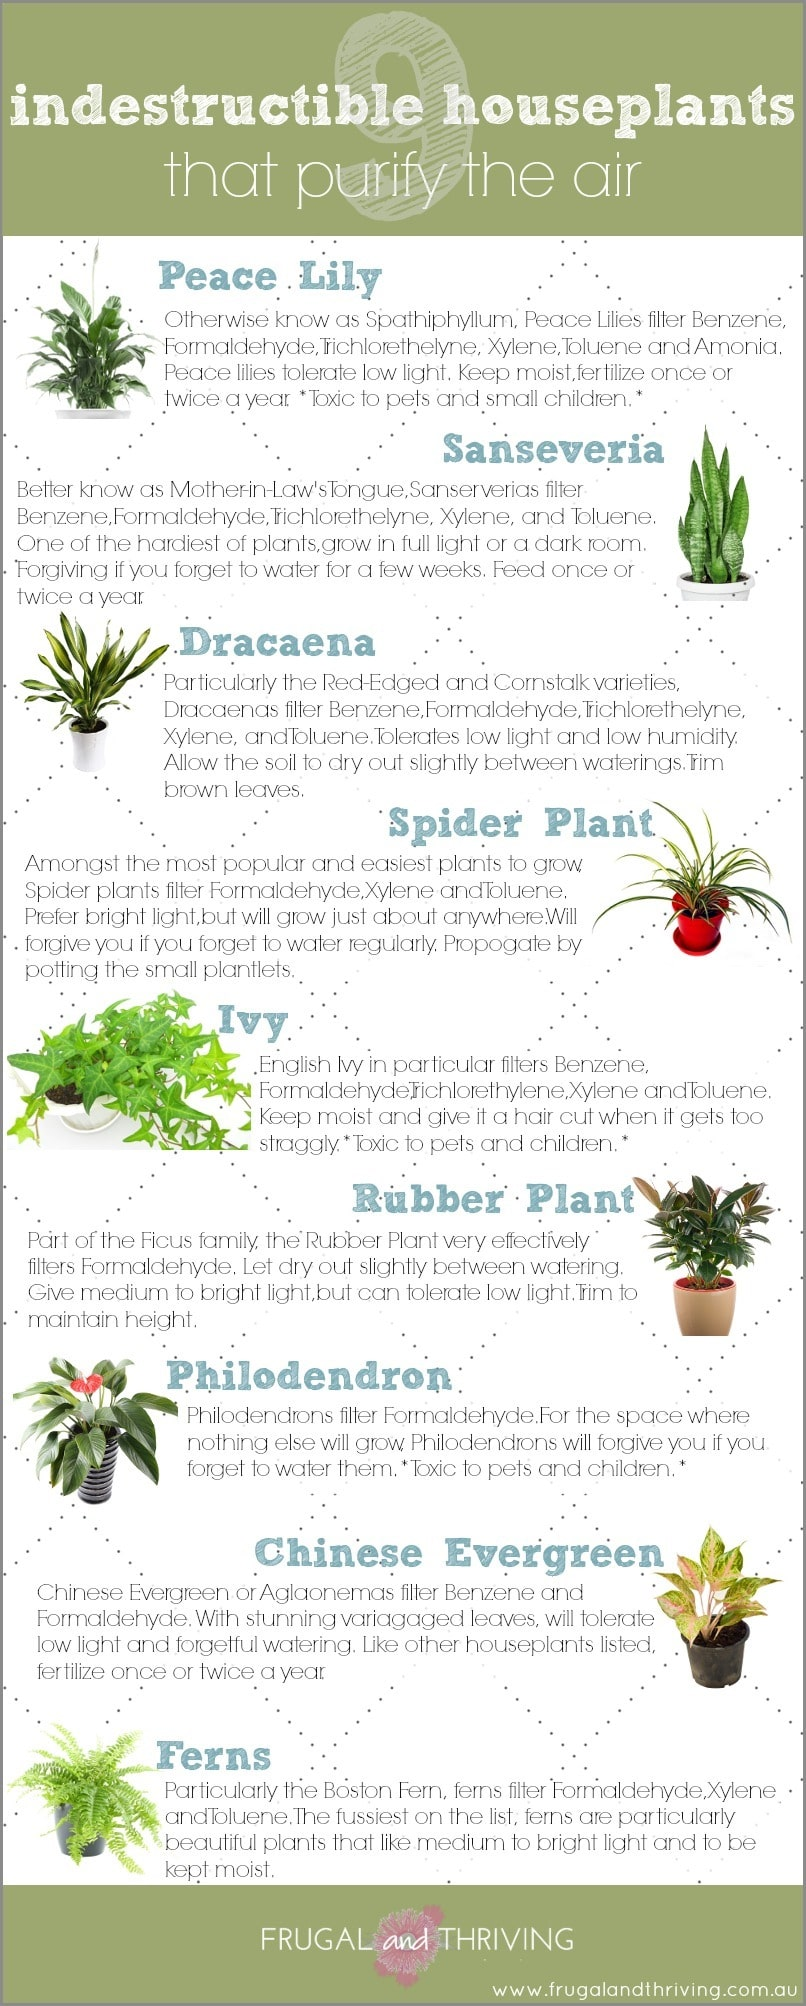 9 indestructible houseplants that purify the air